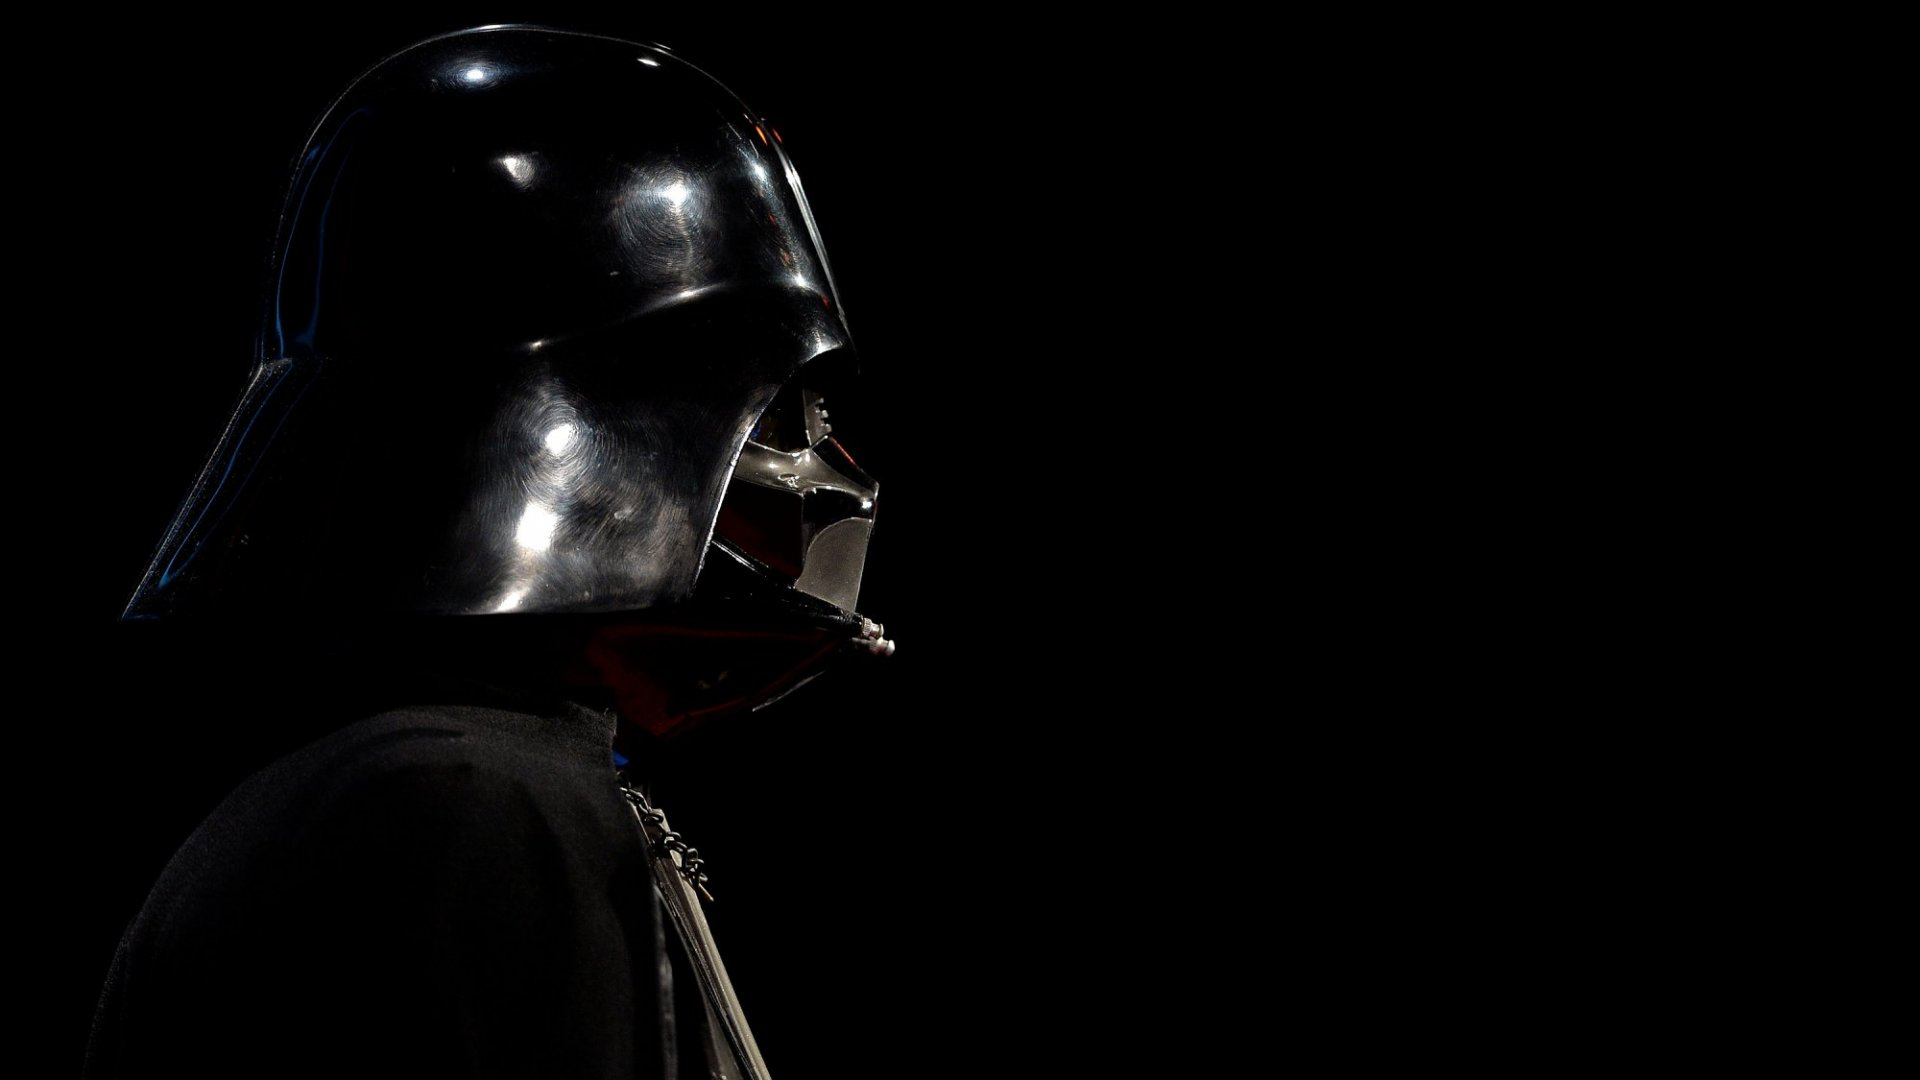 10 Tips from Star Wars to Make You a Star Speaker